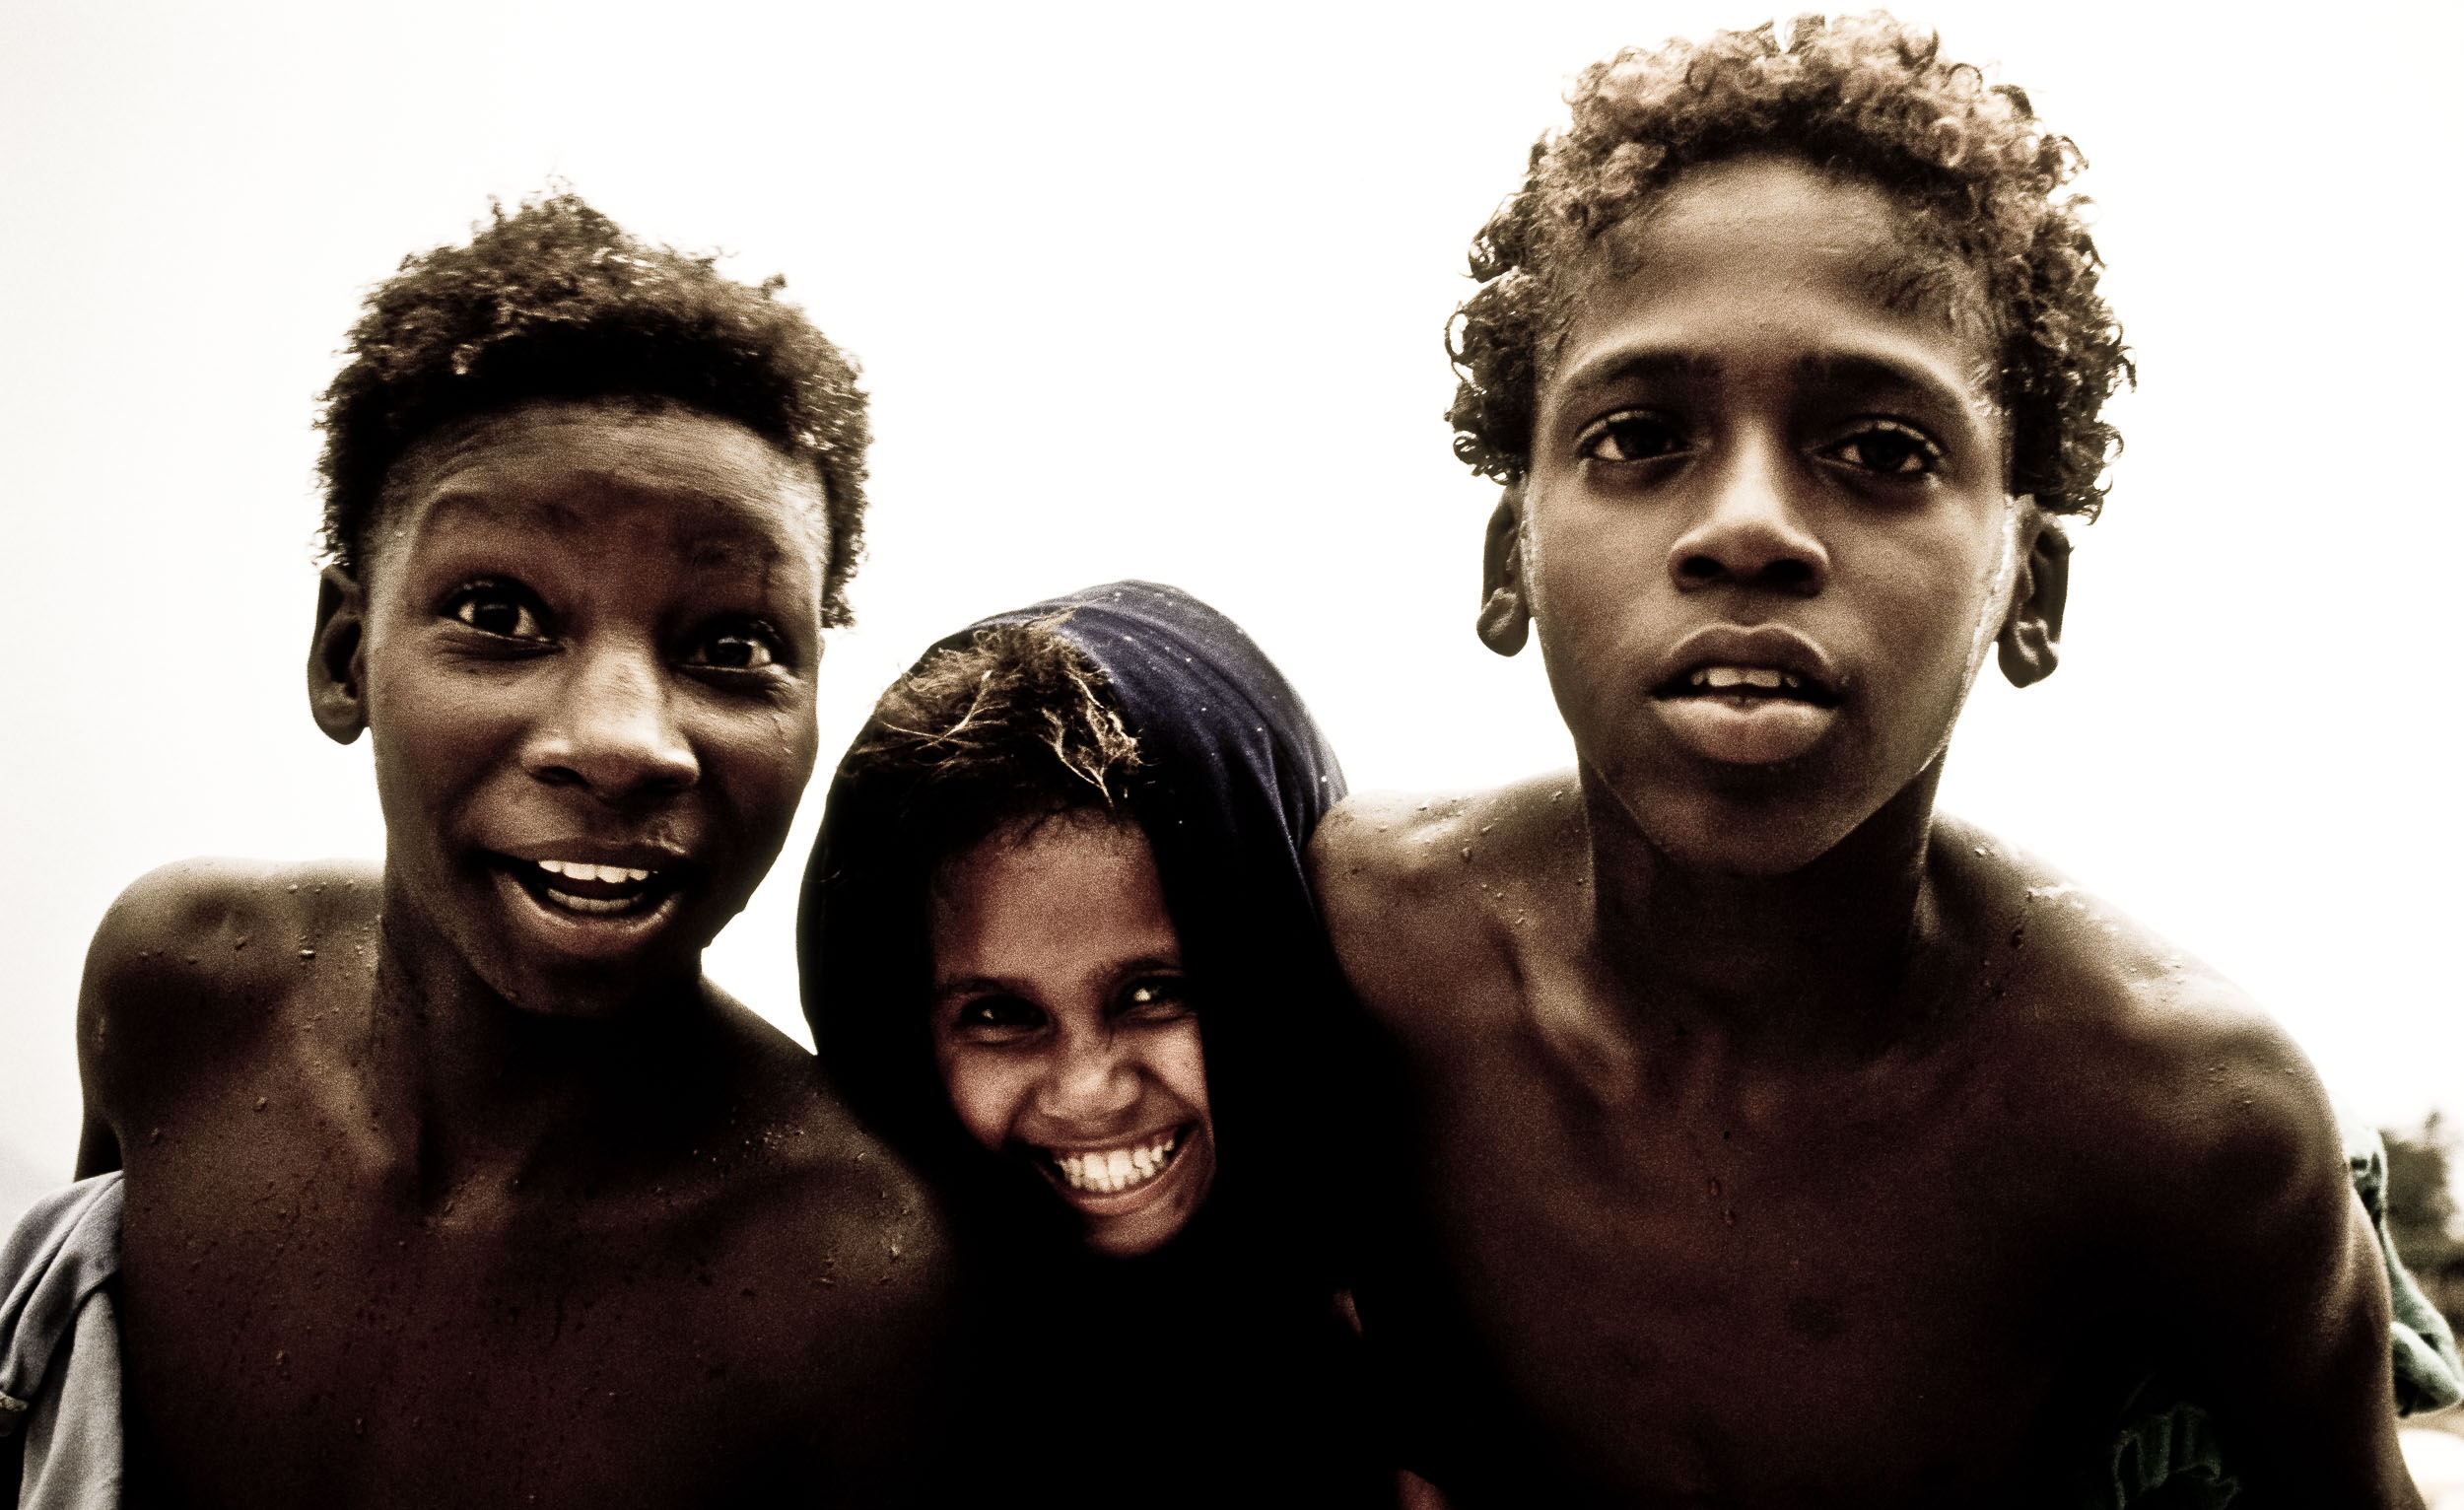 Friends from the favela, Rio, Brazil. From Jed Share